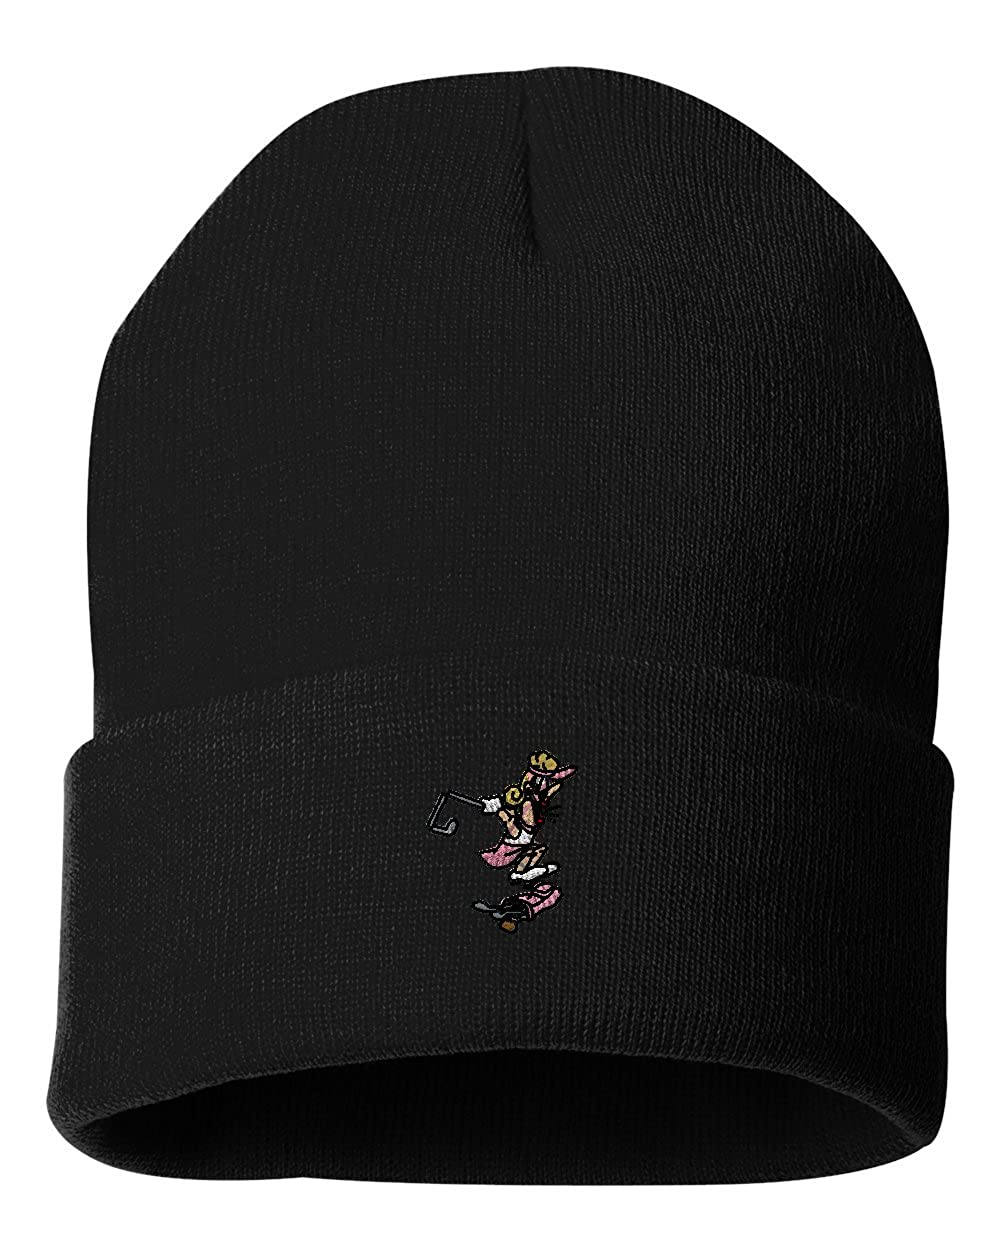 Mad Female Golfer/ Custom Personalized Embroidery Embroidered Beanie